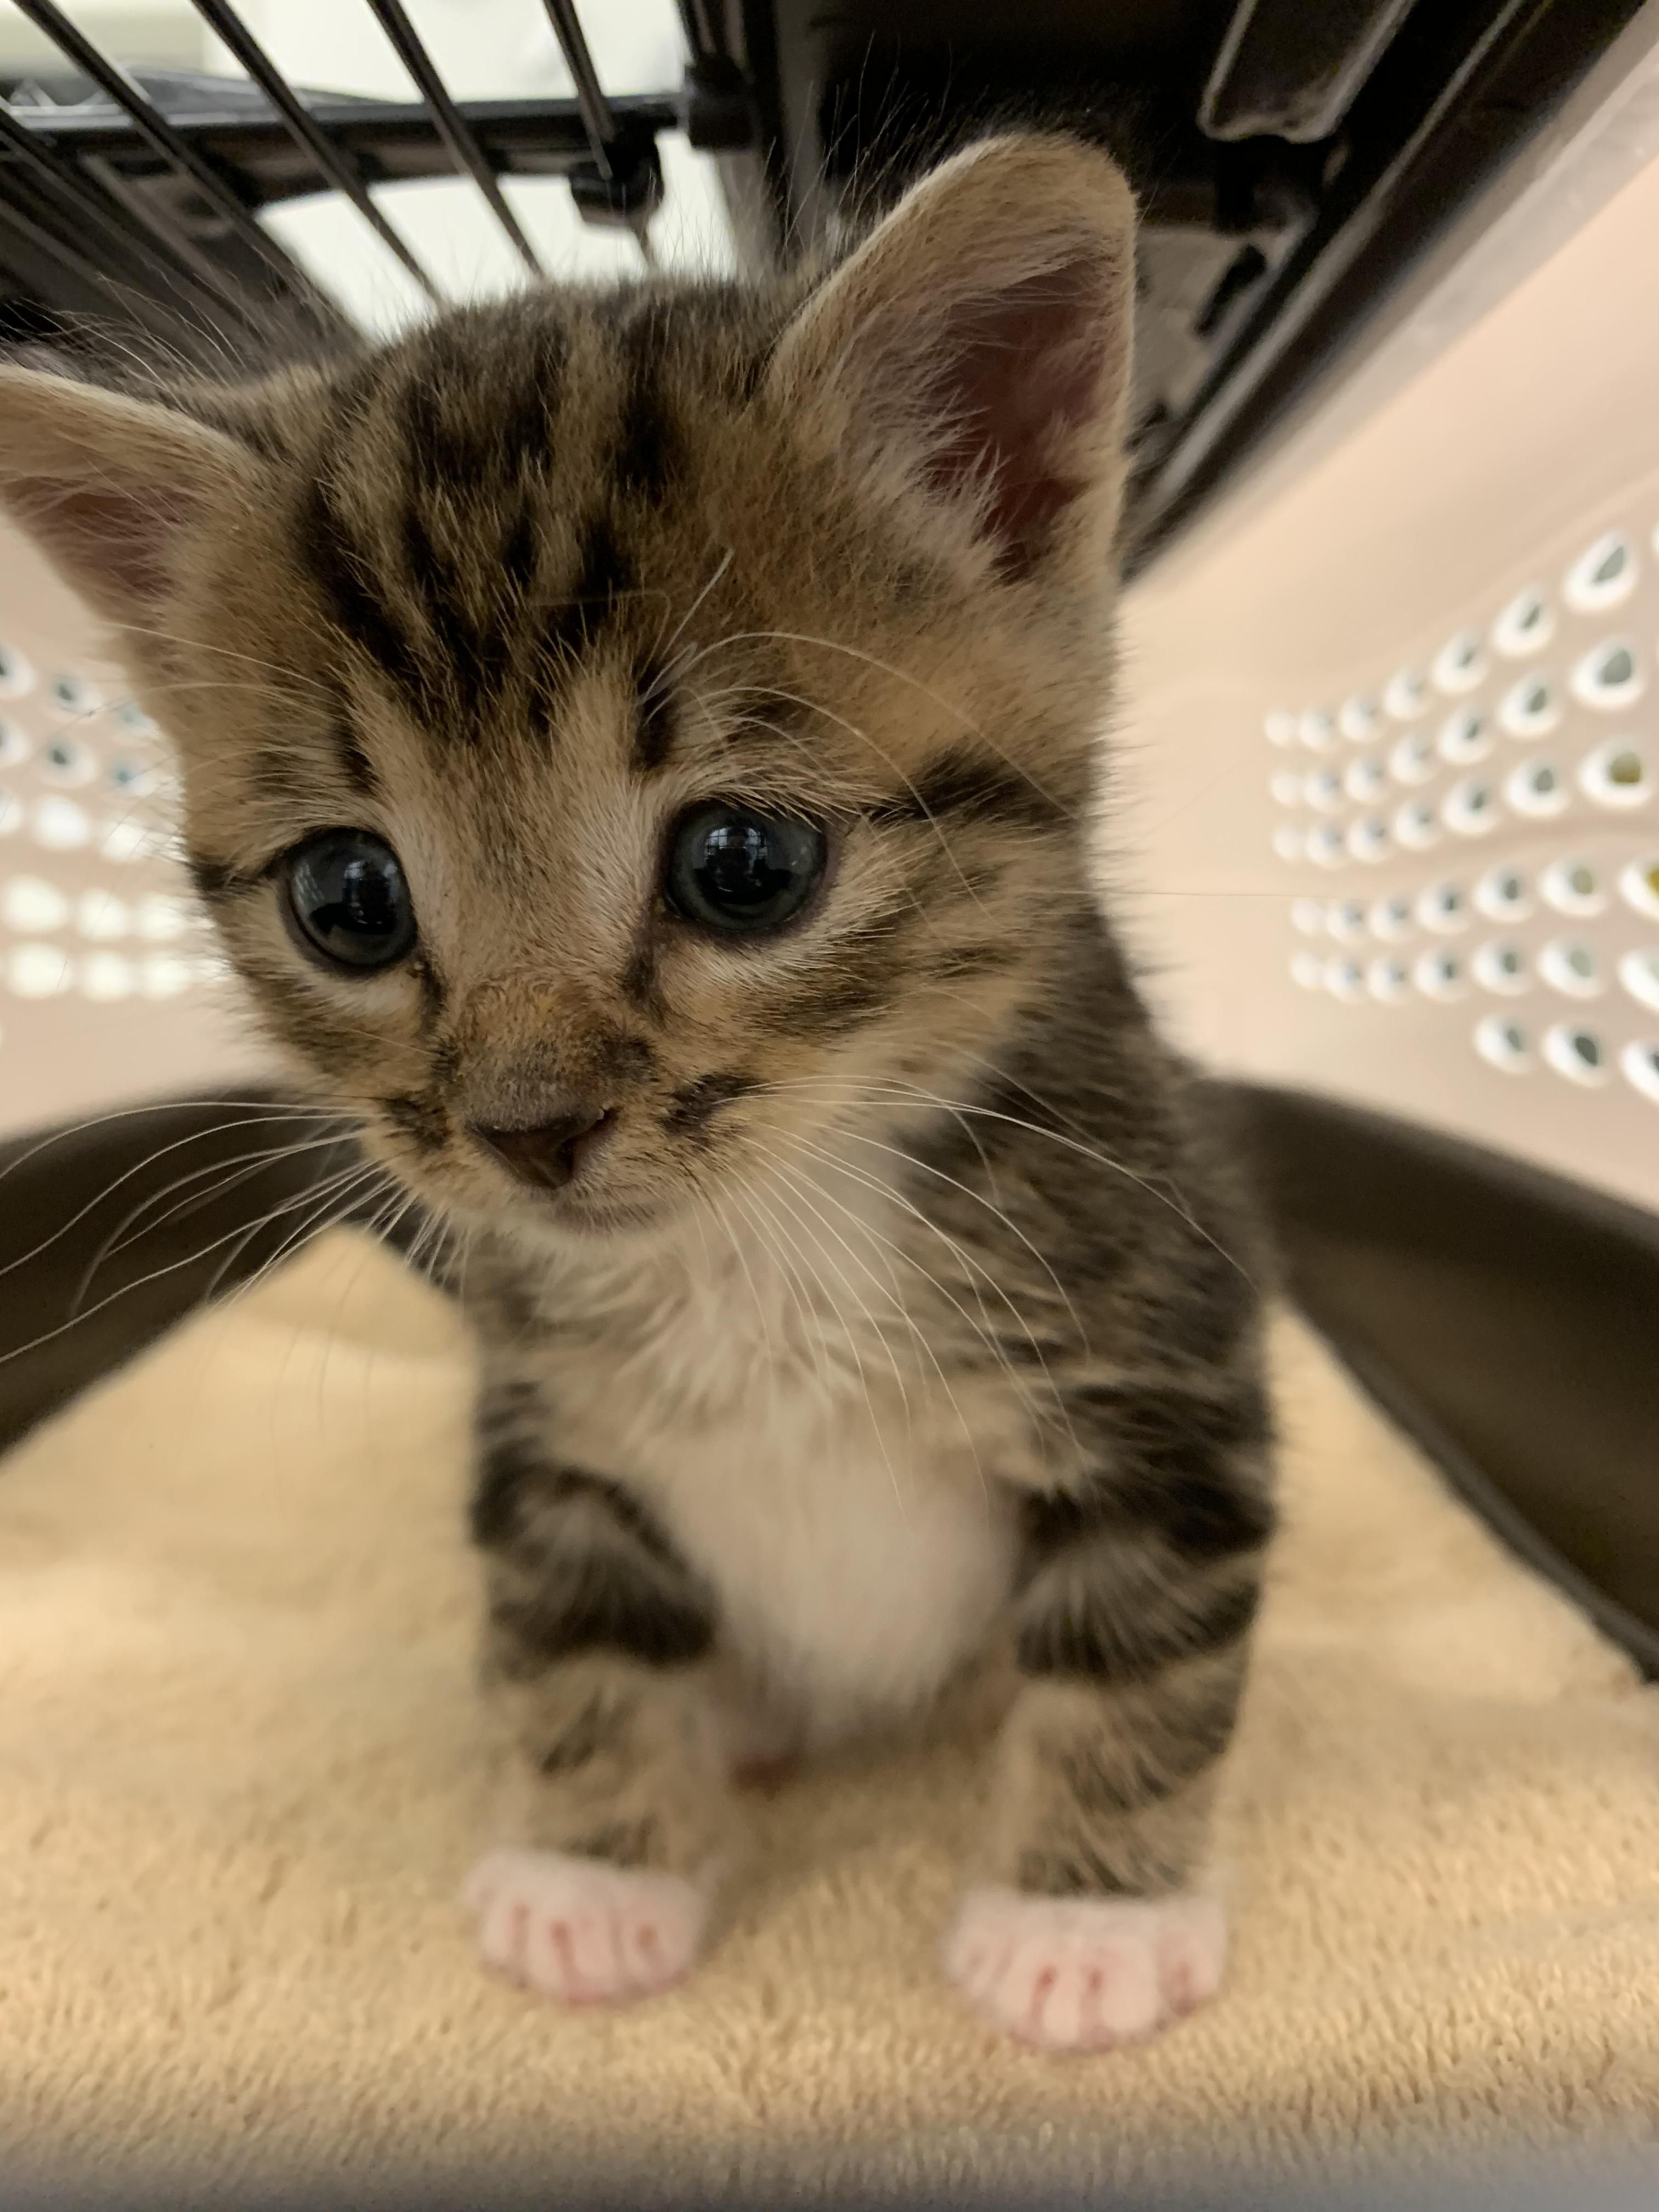 This Little Angel Was Found Outside In The Backyard She Now Has A Forever Home Https Ift Tt 2mixfx4 Cute Animal Photos Kitten Care Newborn Kittens